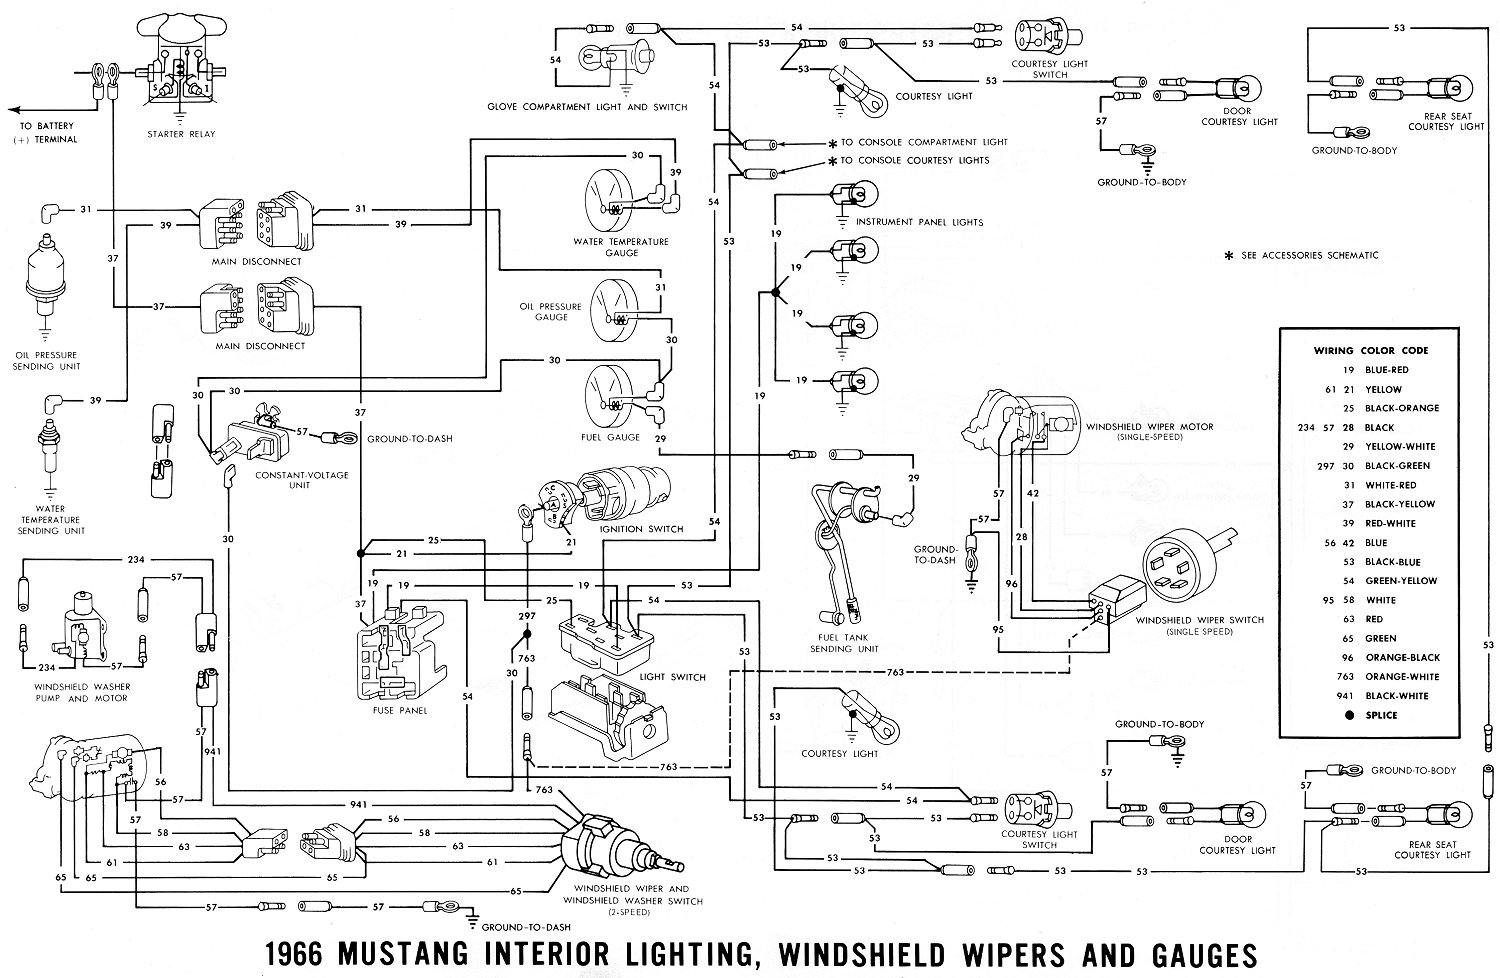 66inter1 1966 mustang wiring diagrams average joe restoration 1968 ford mustang wiring diagram at n-0.co